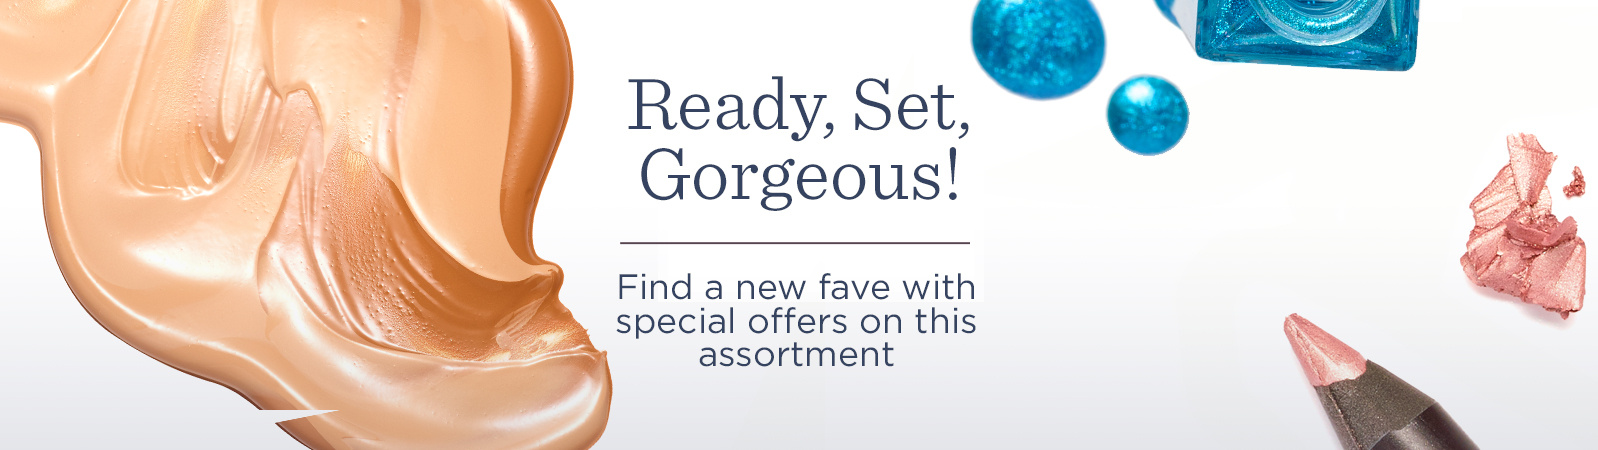 Ready, Set, Gorgeous!  Find a new fave with special offers on this assortment